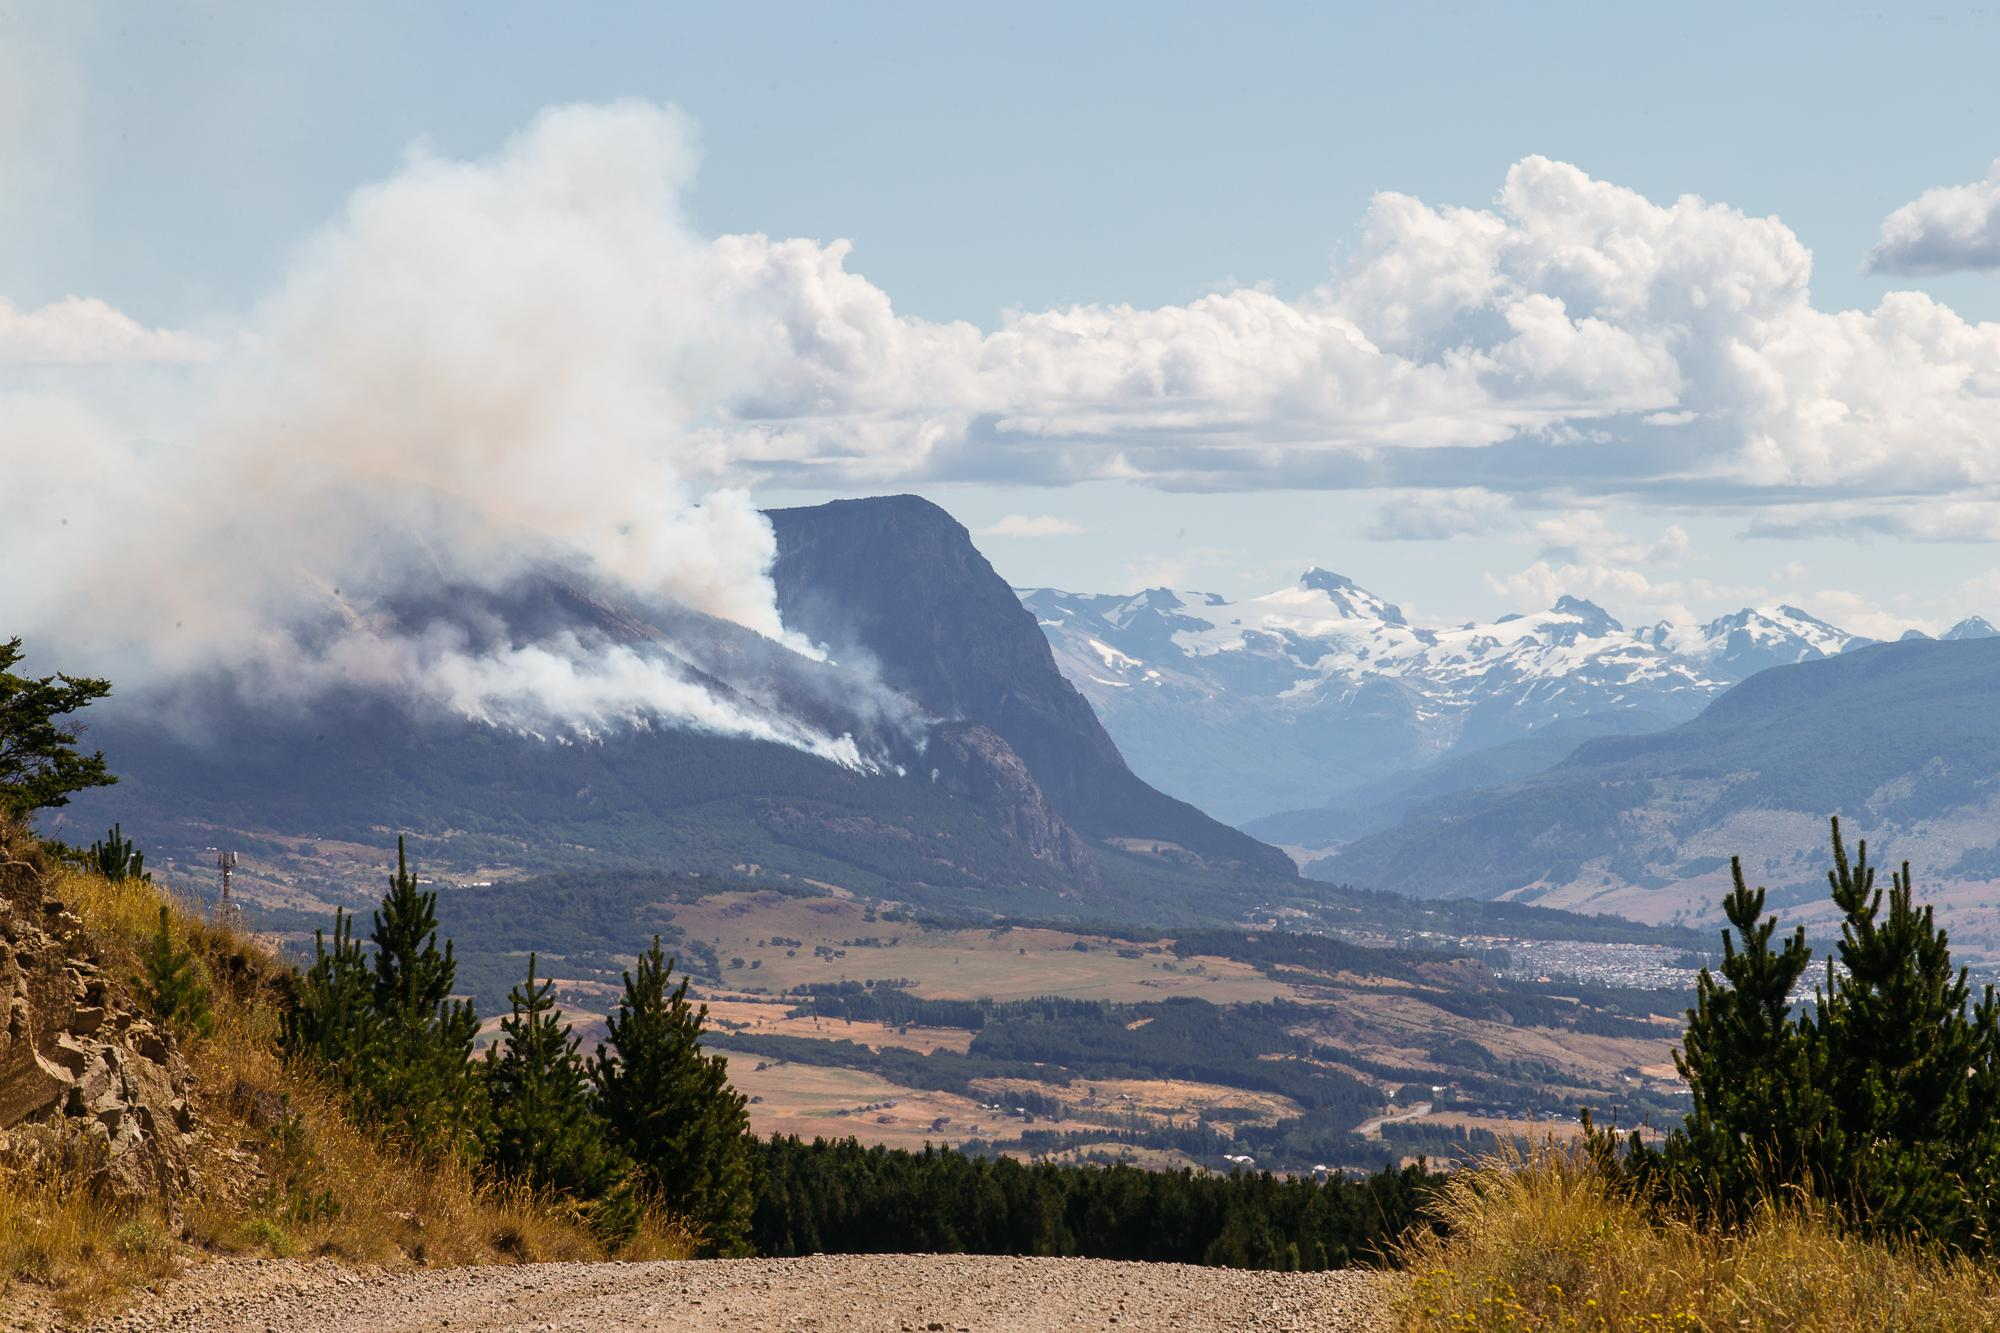 Forest fire burning.